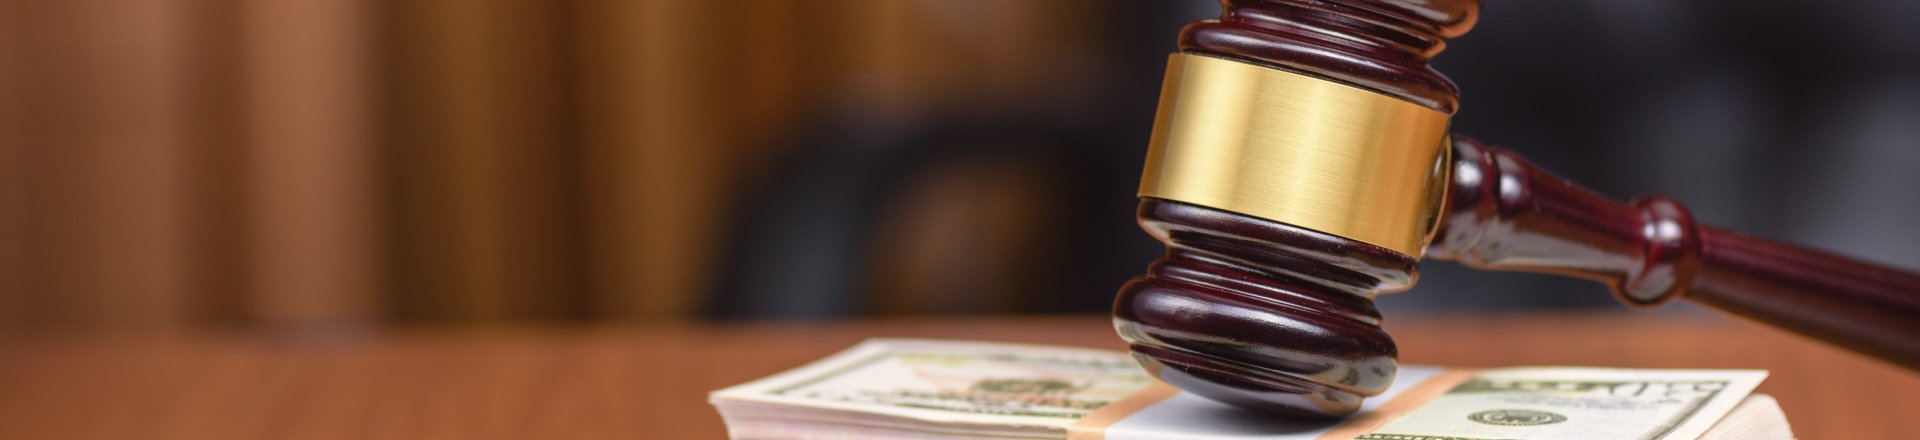 Judges Gavel And Bundles Of Money On The Judges Table, Inadequate Building / Apartment Security Claims Lawyer